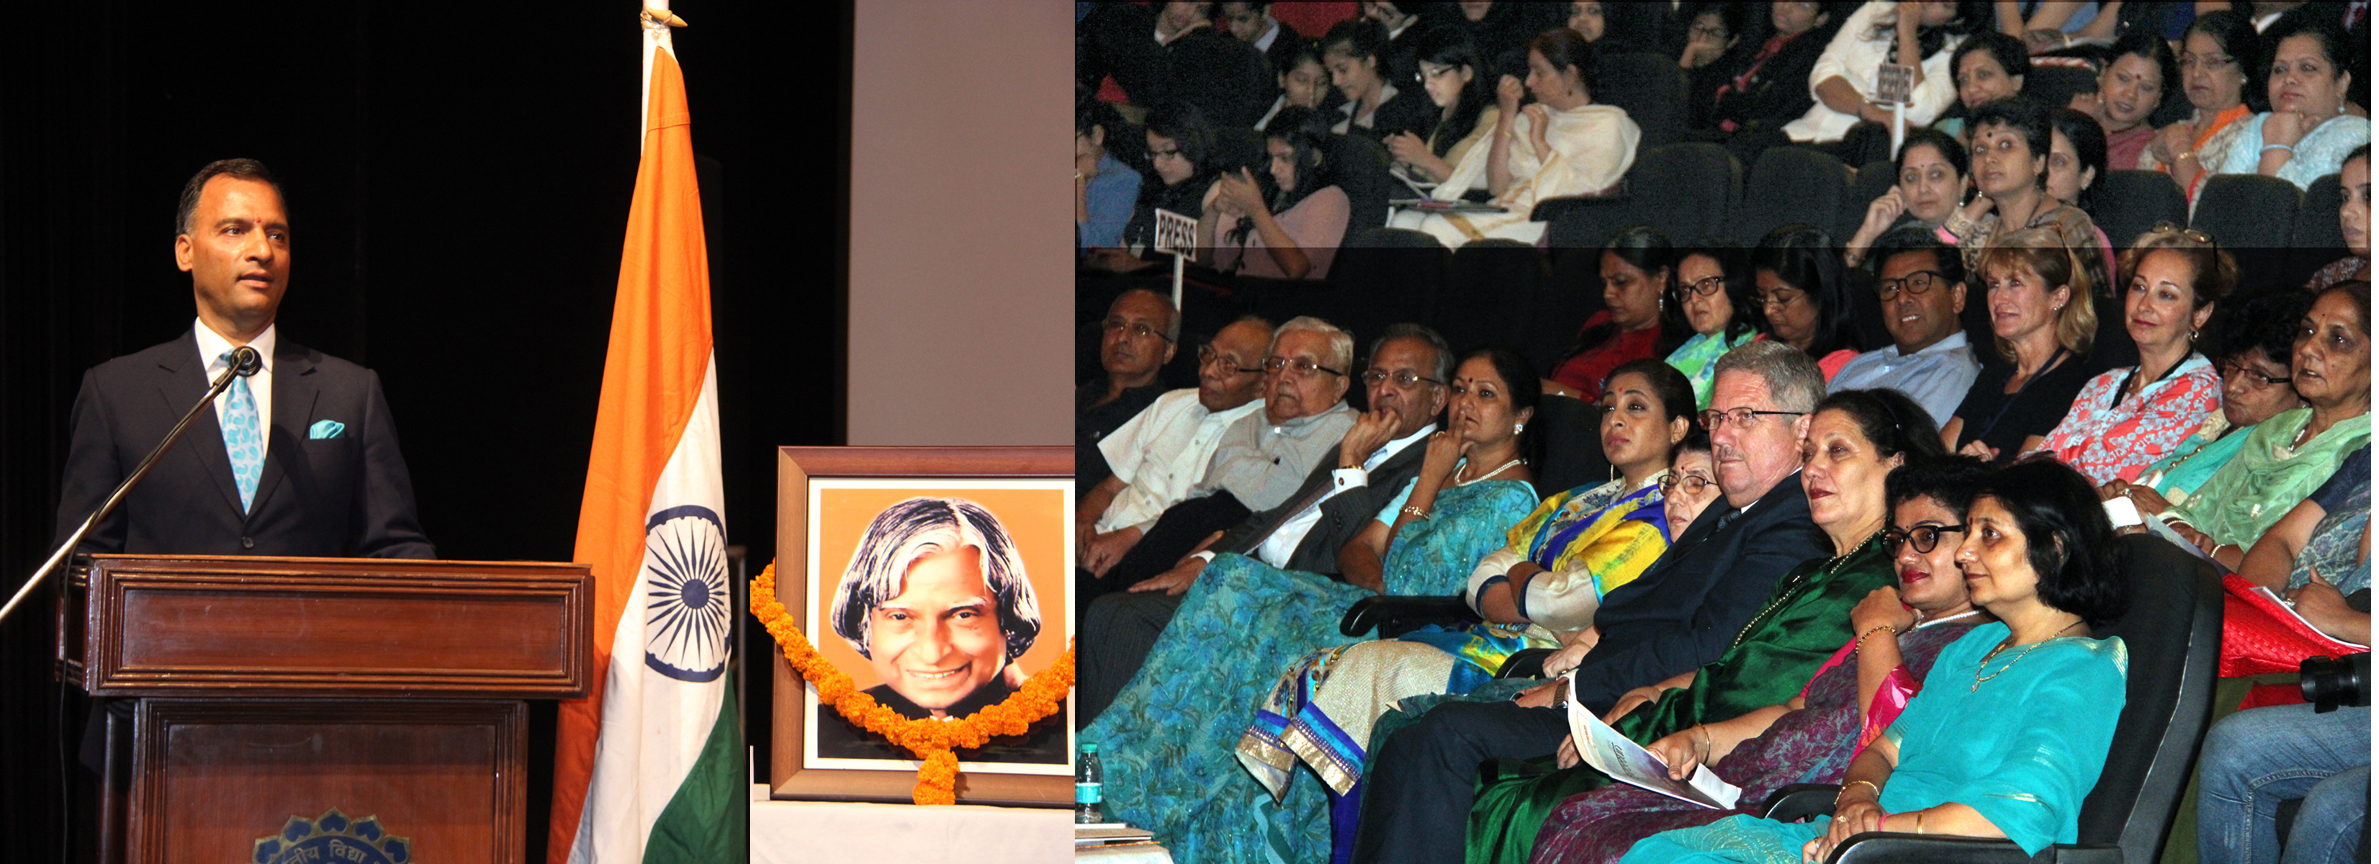 The Adviser to the Administrator, UT, Chandigarh, Mr. Vijay Dev addressng in the Bhavan Vidyalaya, Chandigarh �Model United Nations Conference-2015� at Tagore Theatre, Sector-18, Chandigarh on Friday, July 31, 2015.